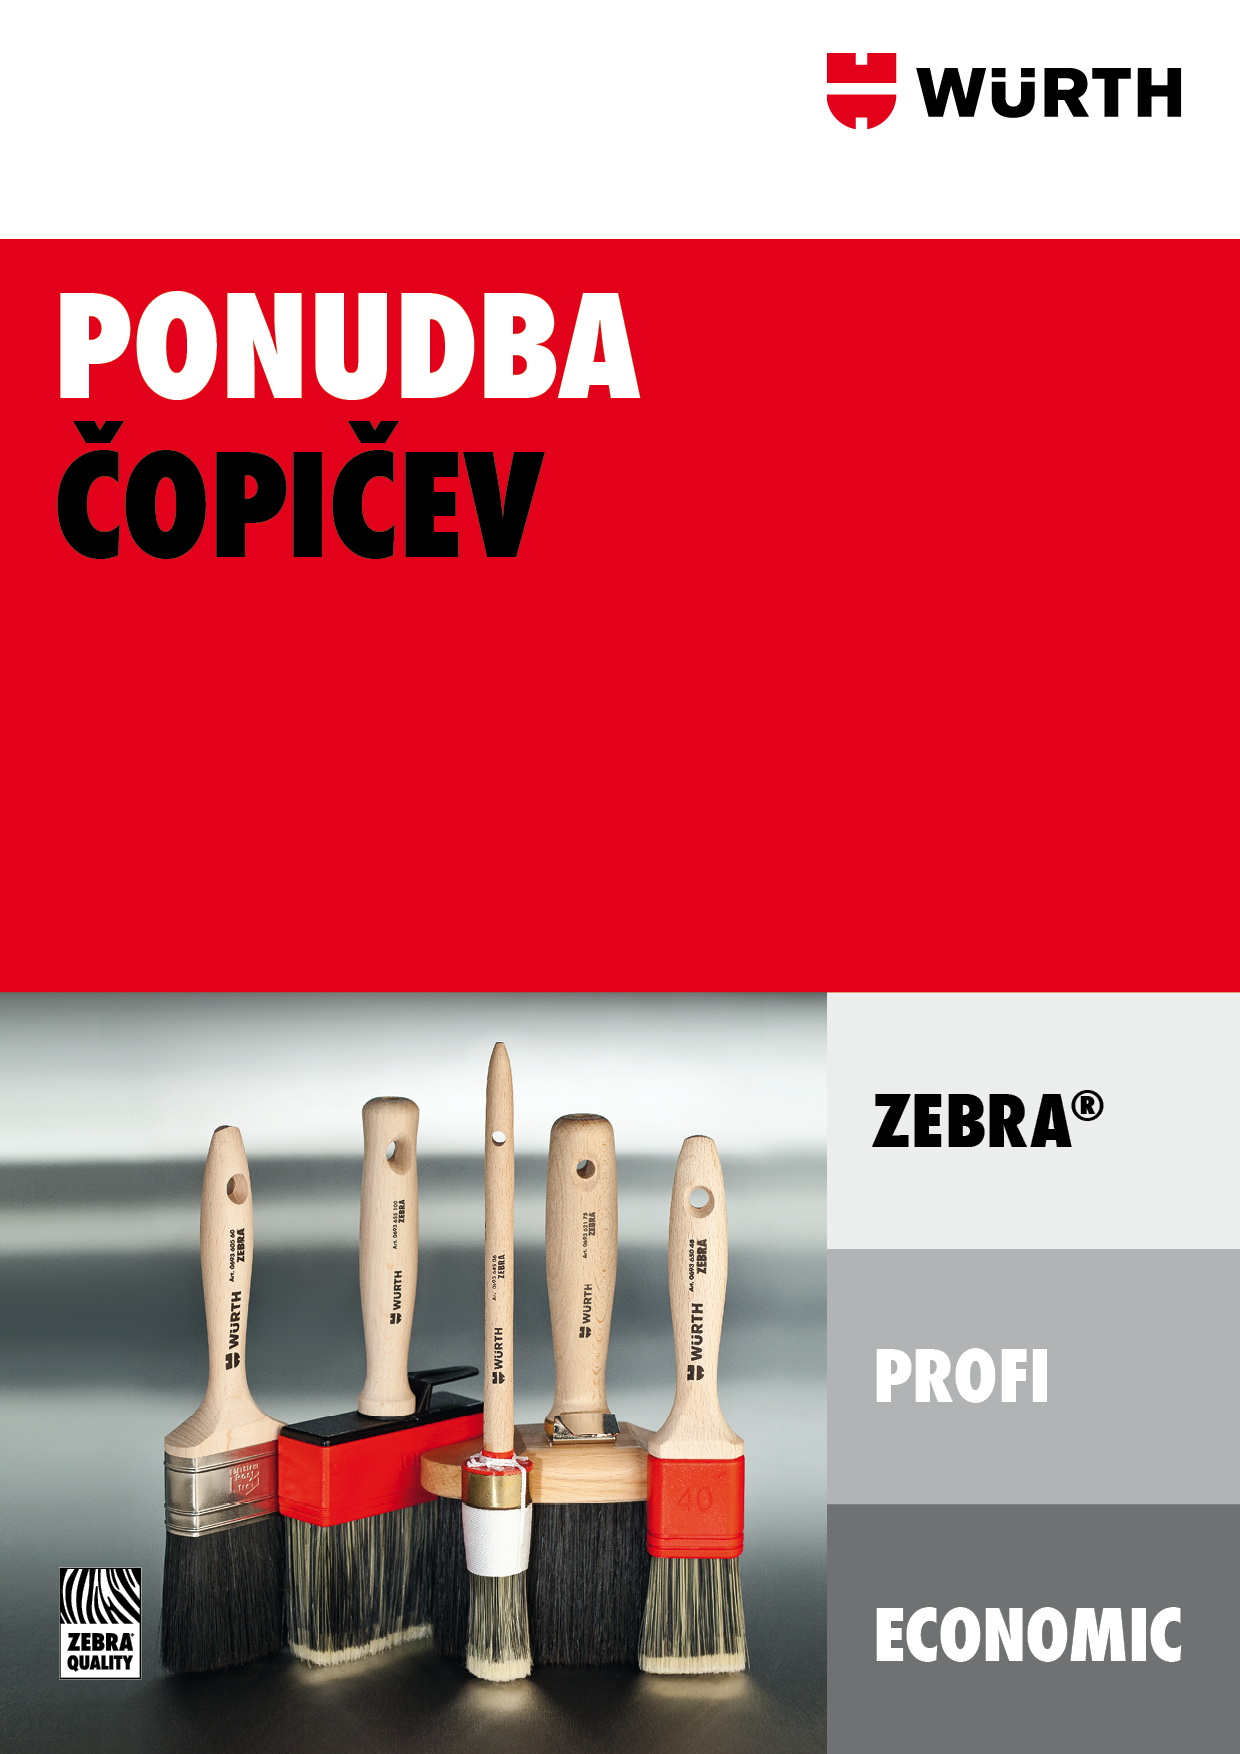 Čopiči, Zebra, Profi, Economic